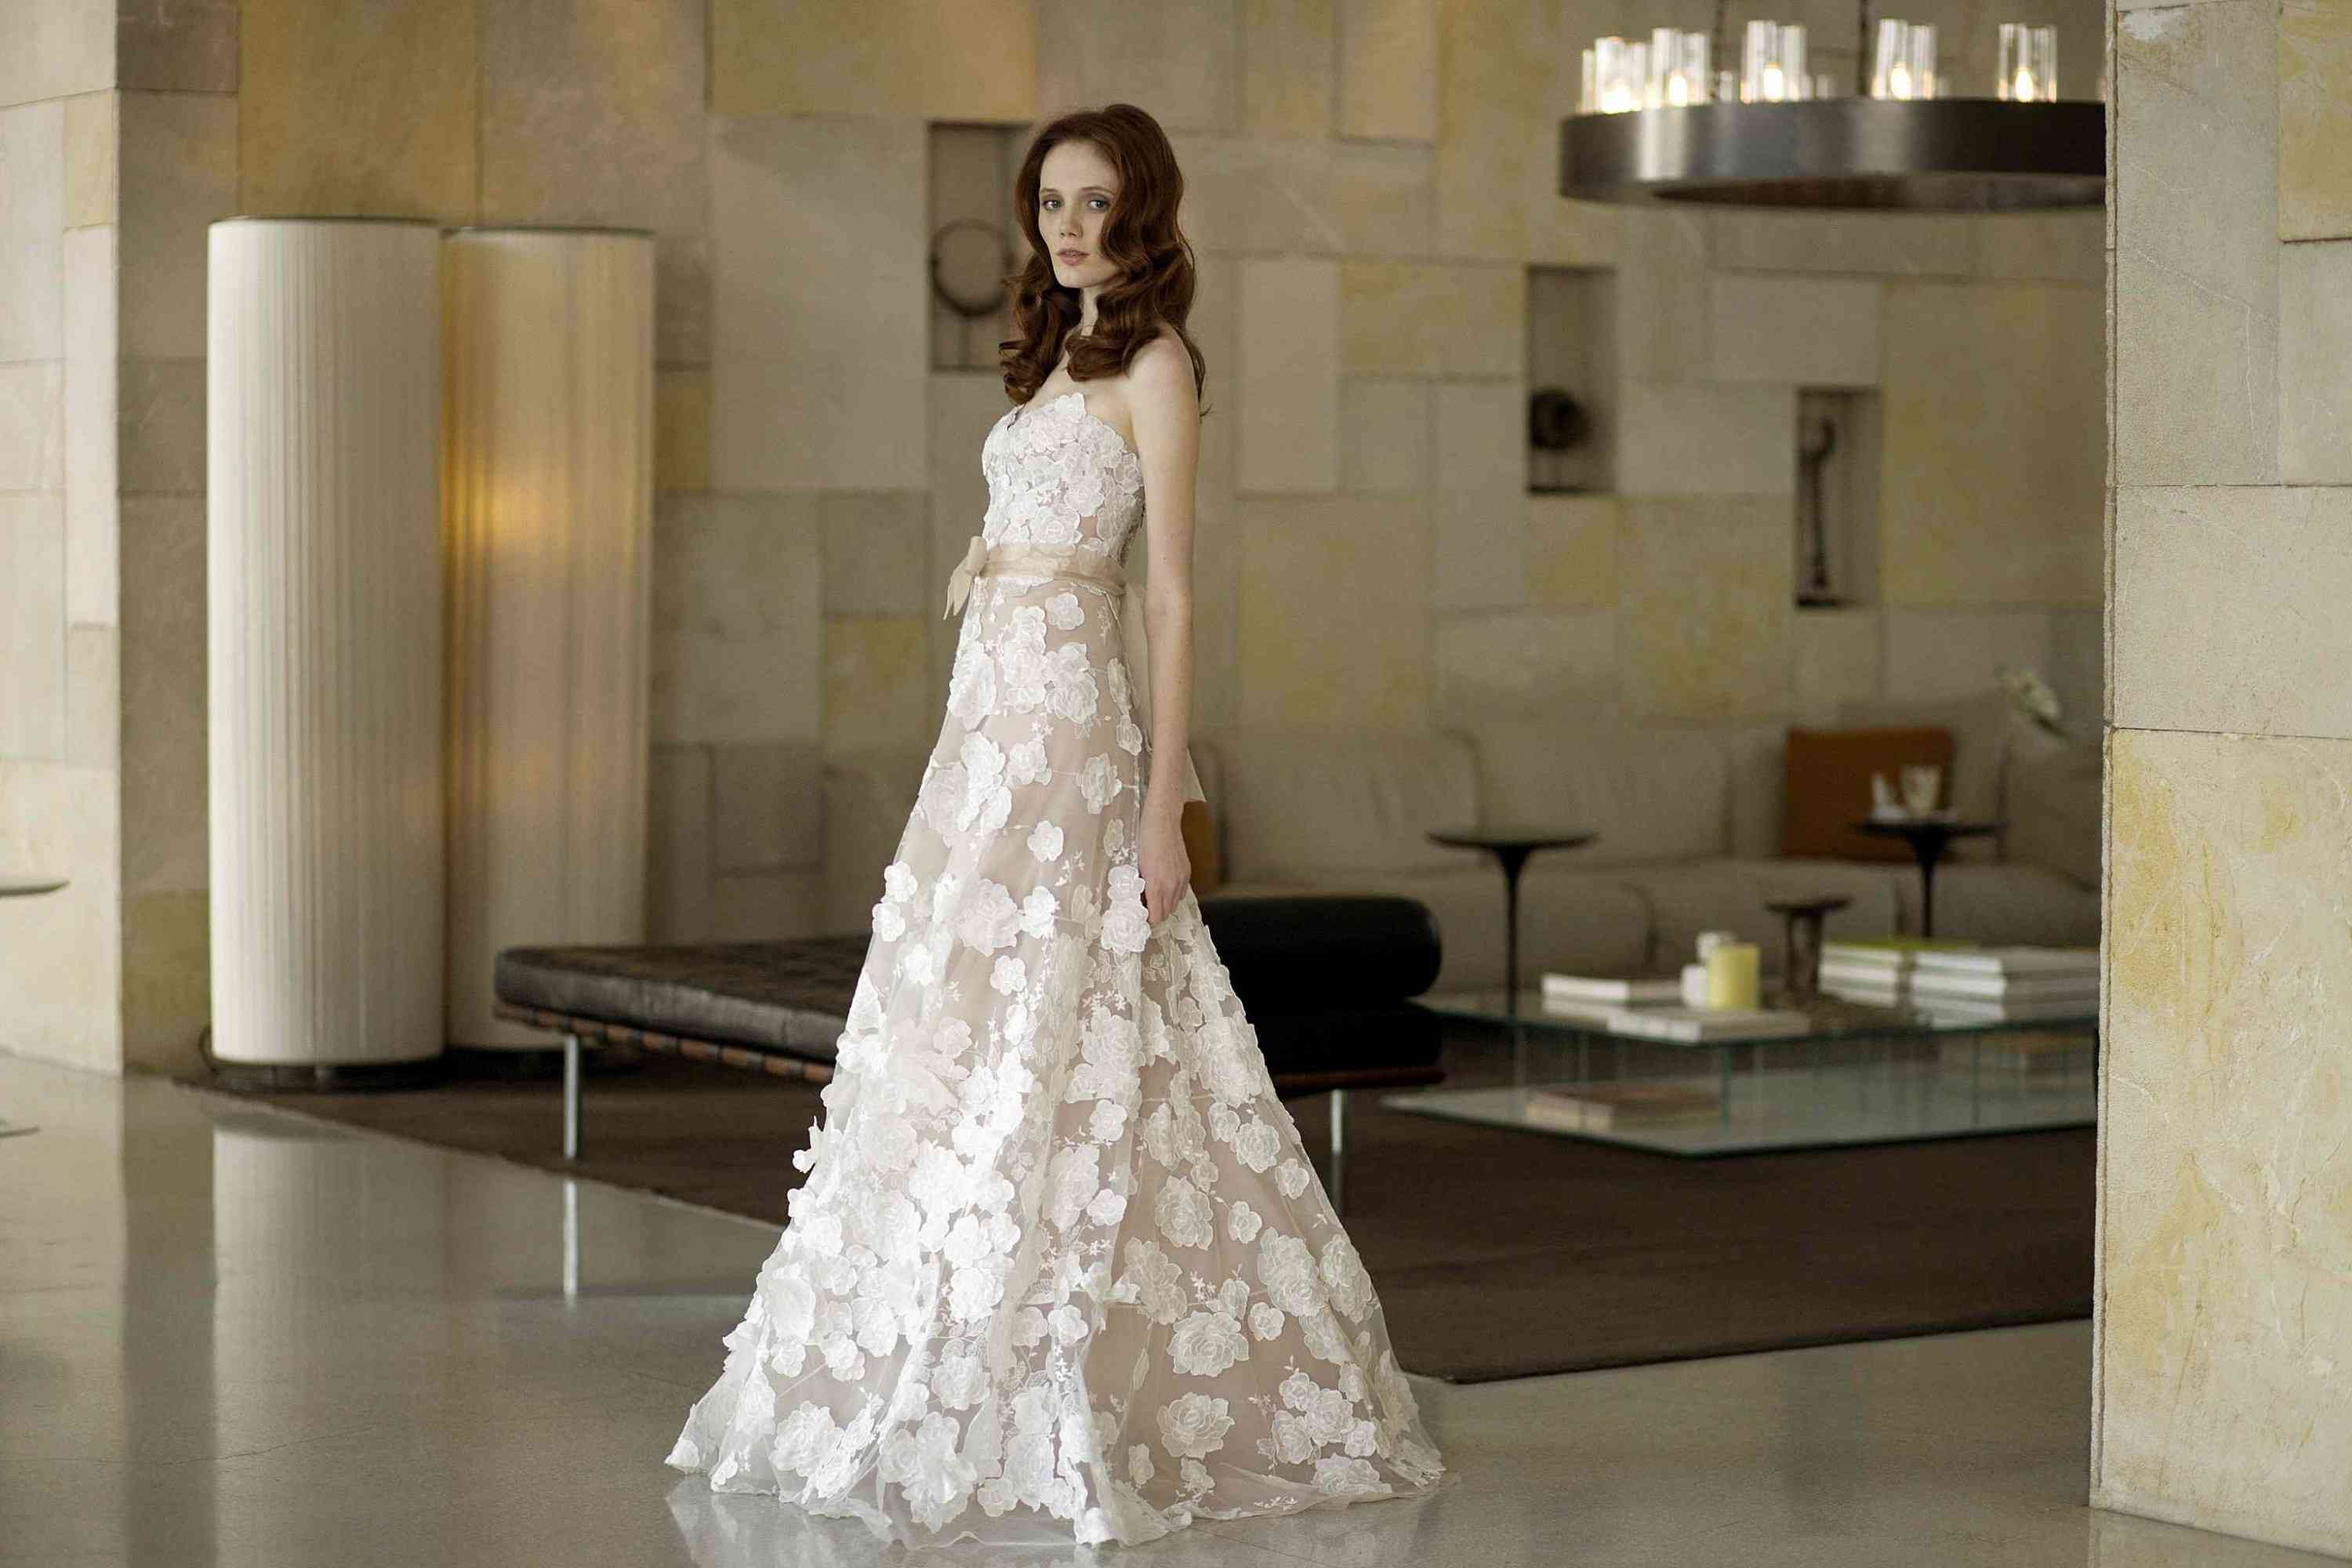 The 9 Best Selling Wedding Dresses Of All Time